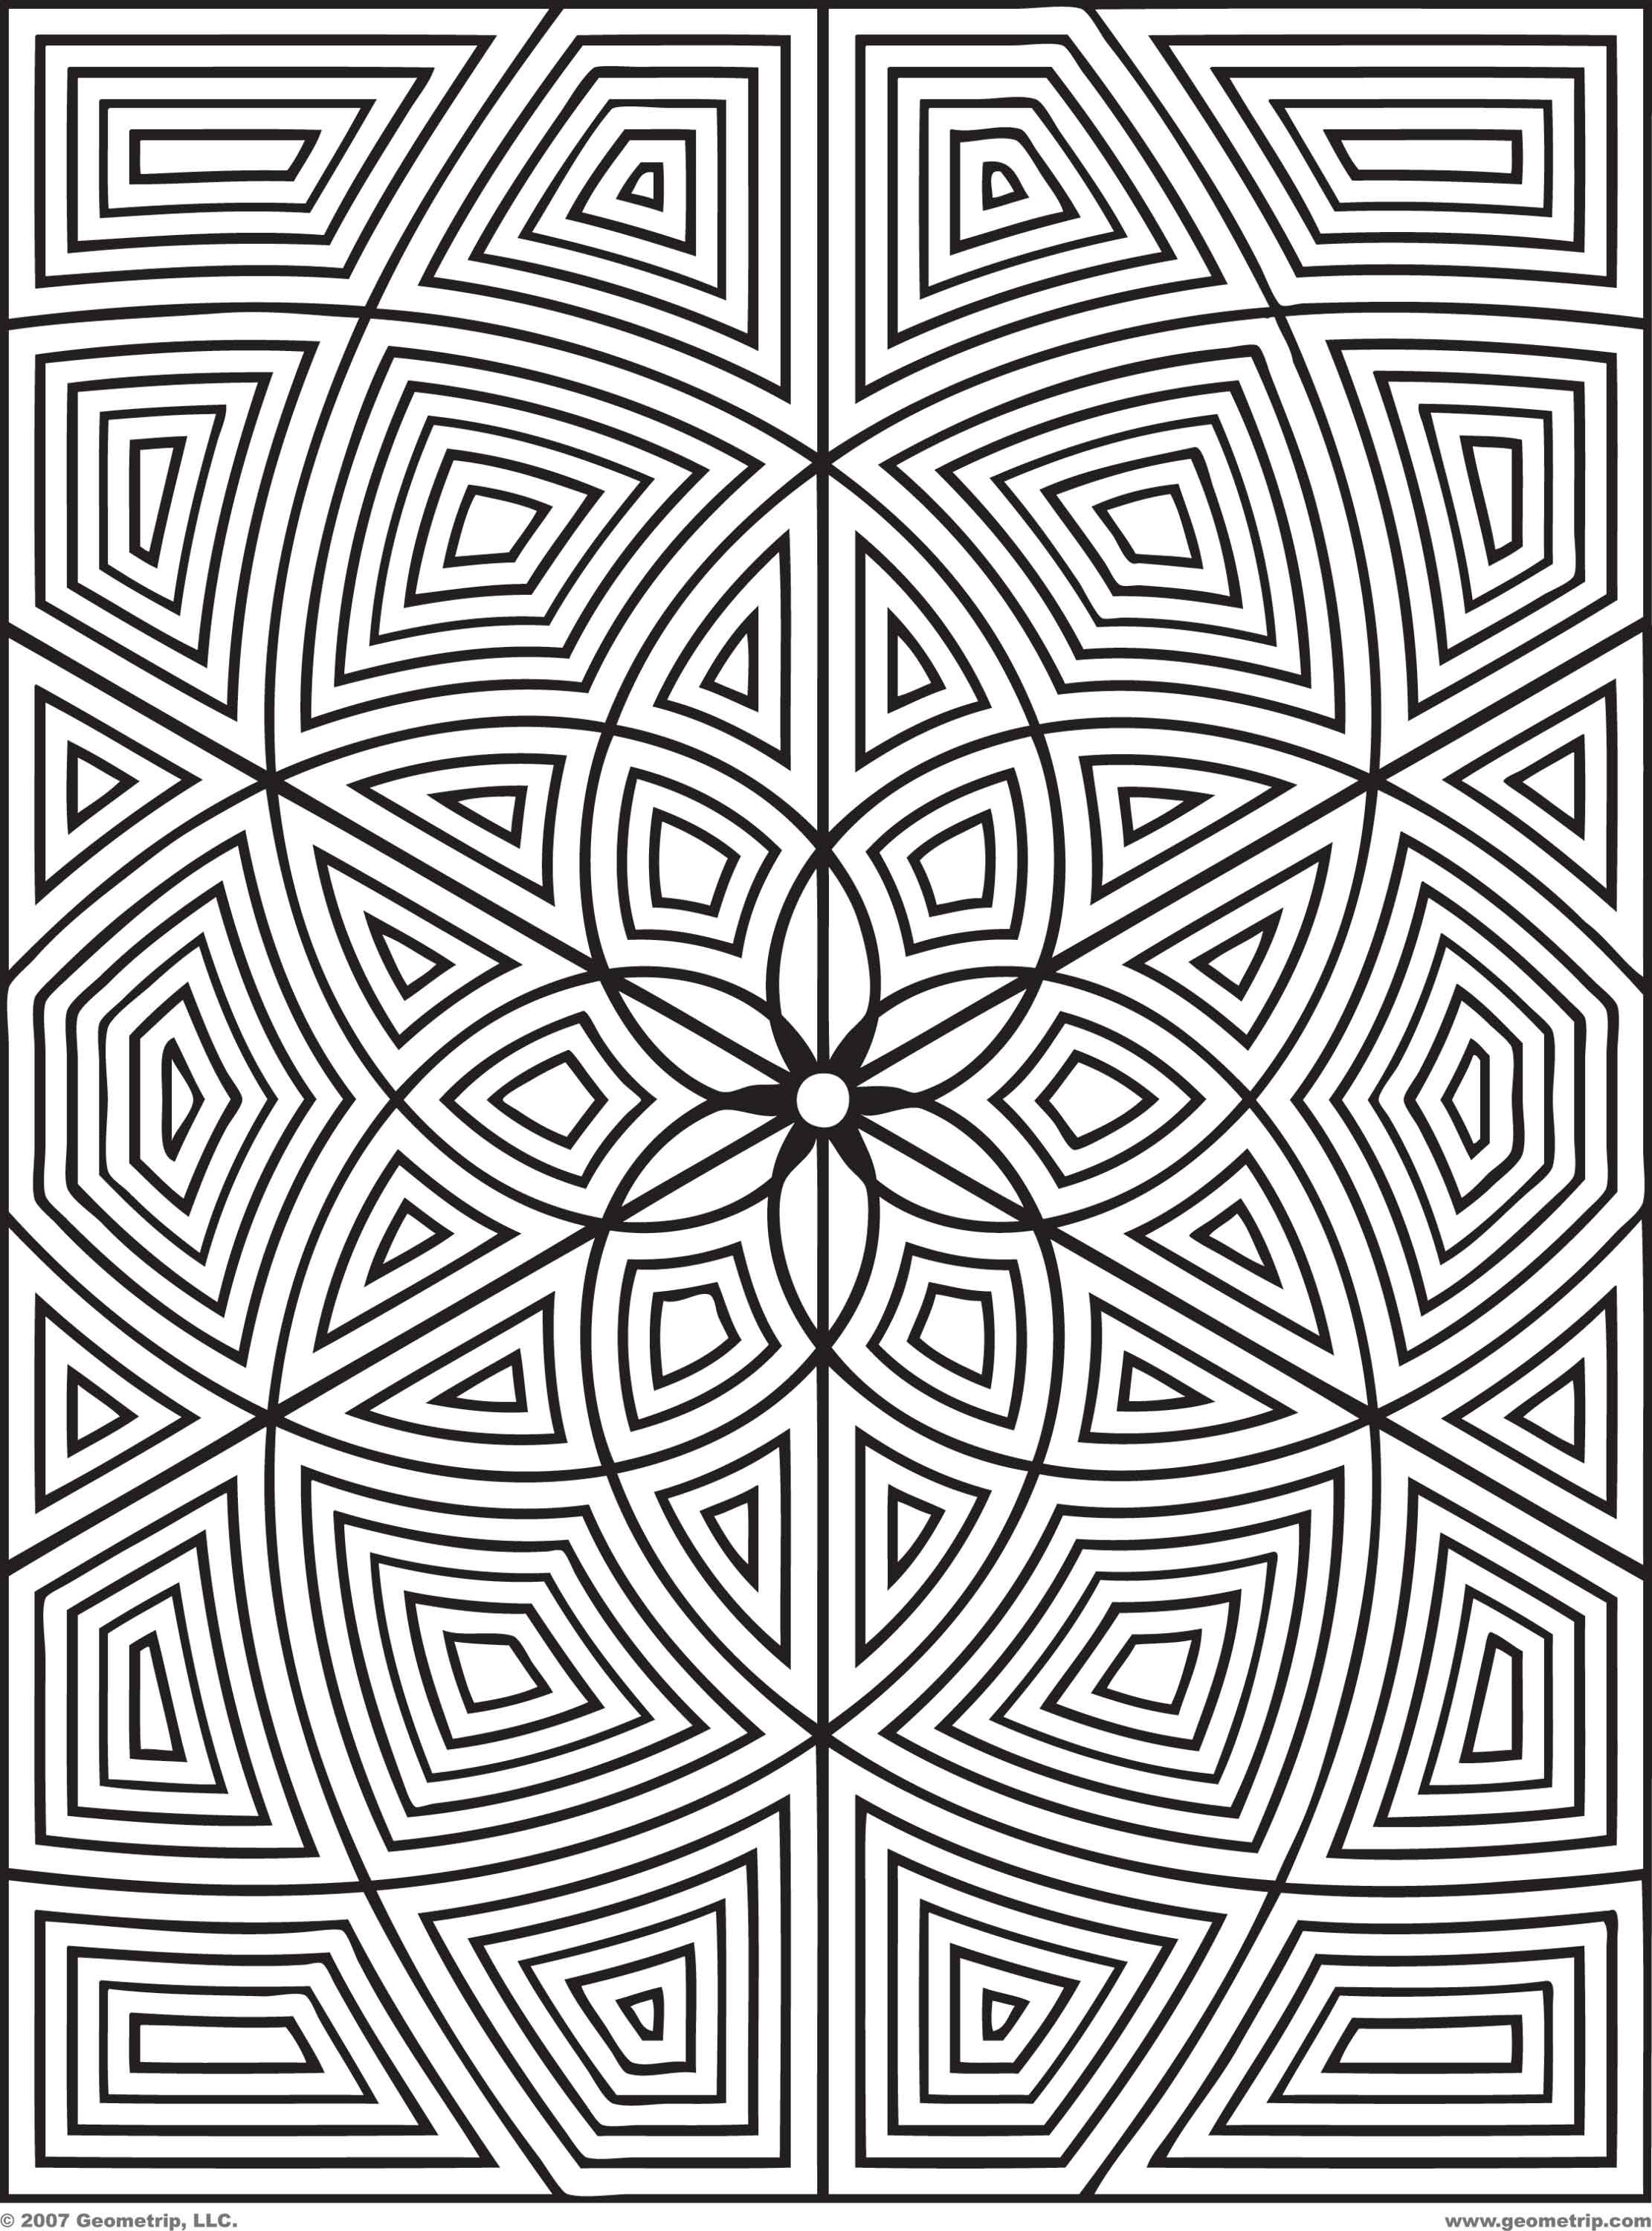 Coloring pages for you all! | Pinterest | Paint buckets